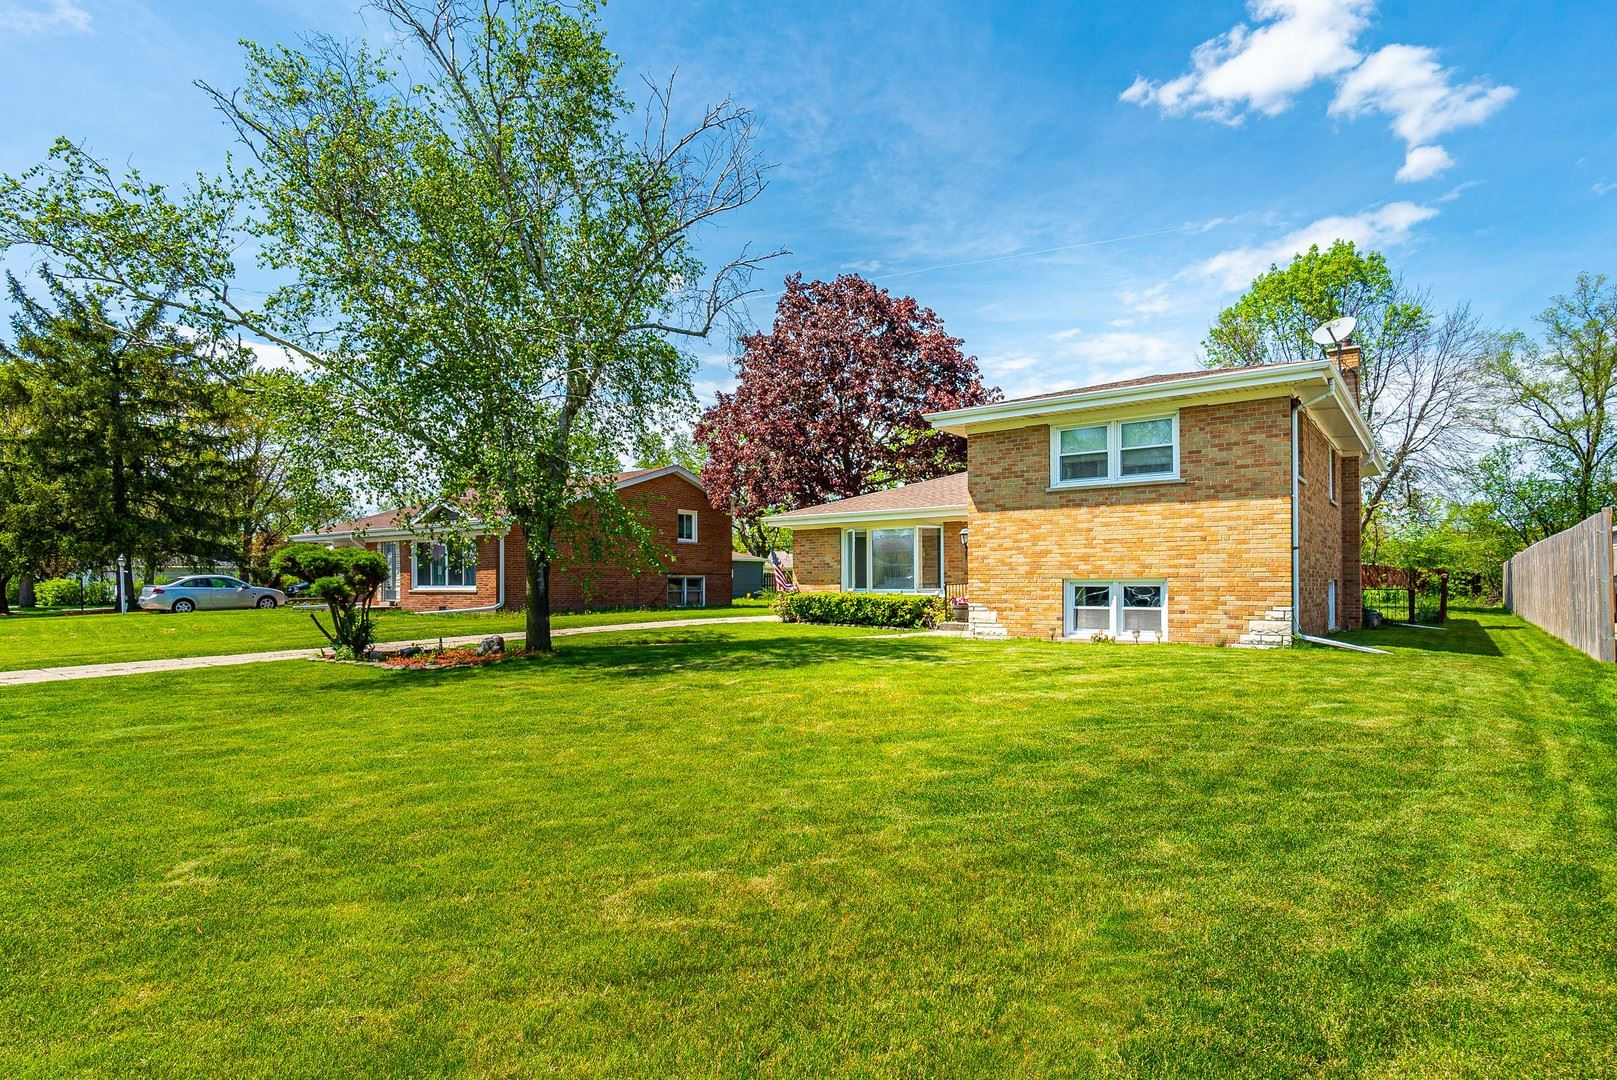 3236 Ronald Road, Glenview, IL 60025 - #: 10792563